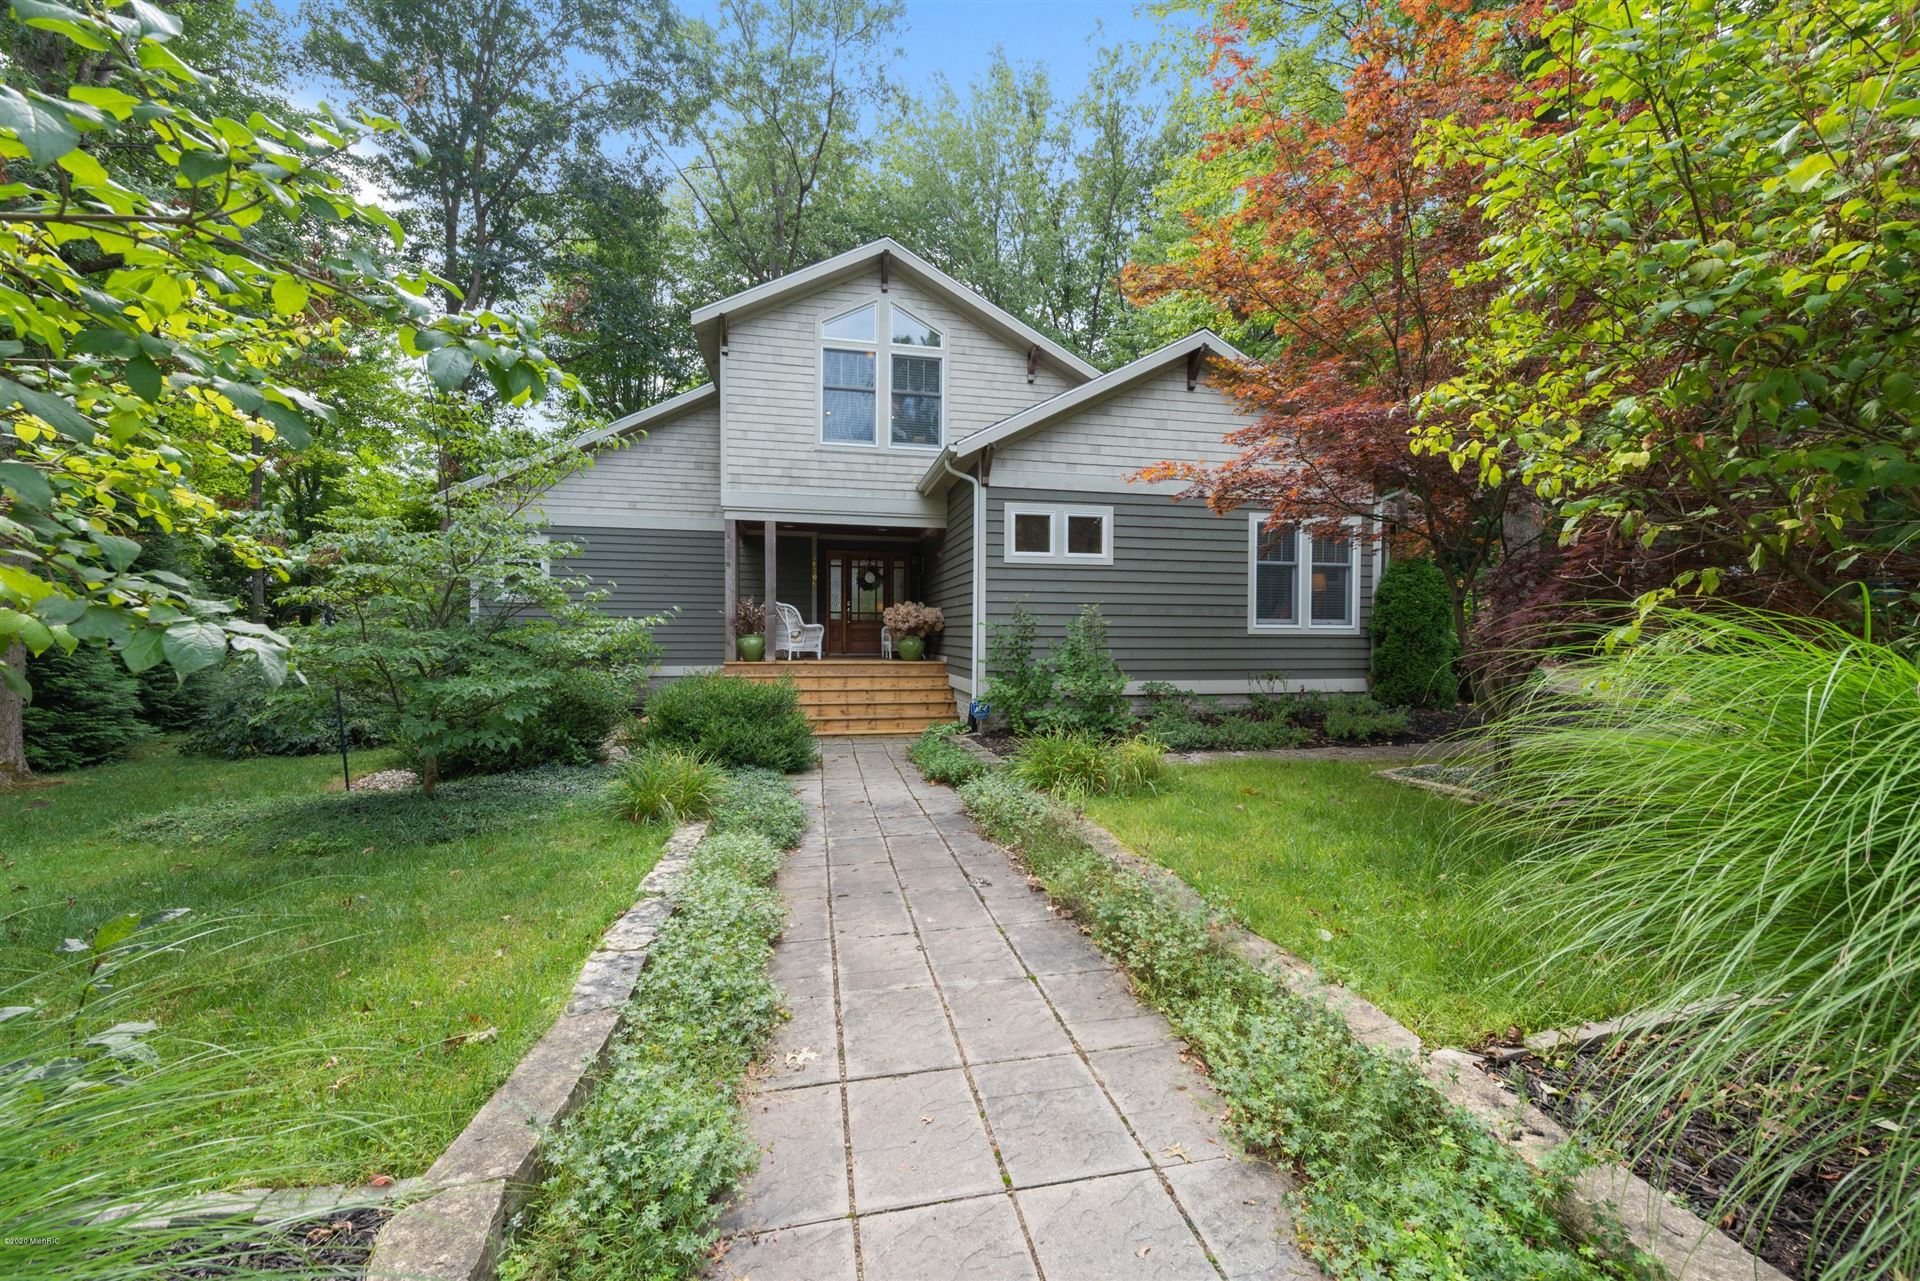 16206 Quality Lane, Union Pier, MI 49129 - MLS#: 20038024